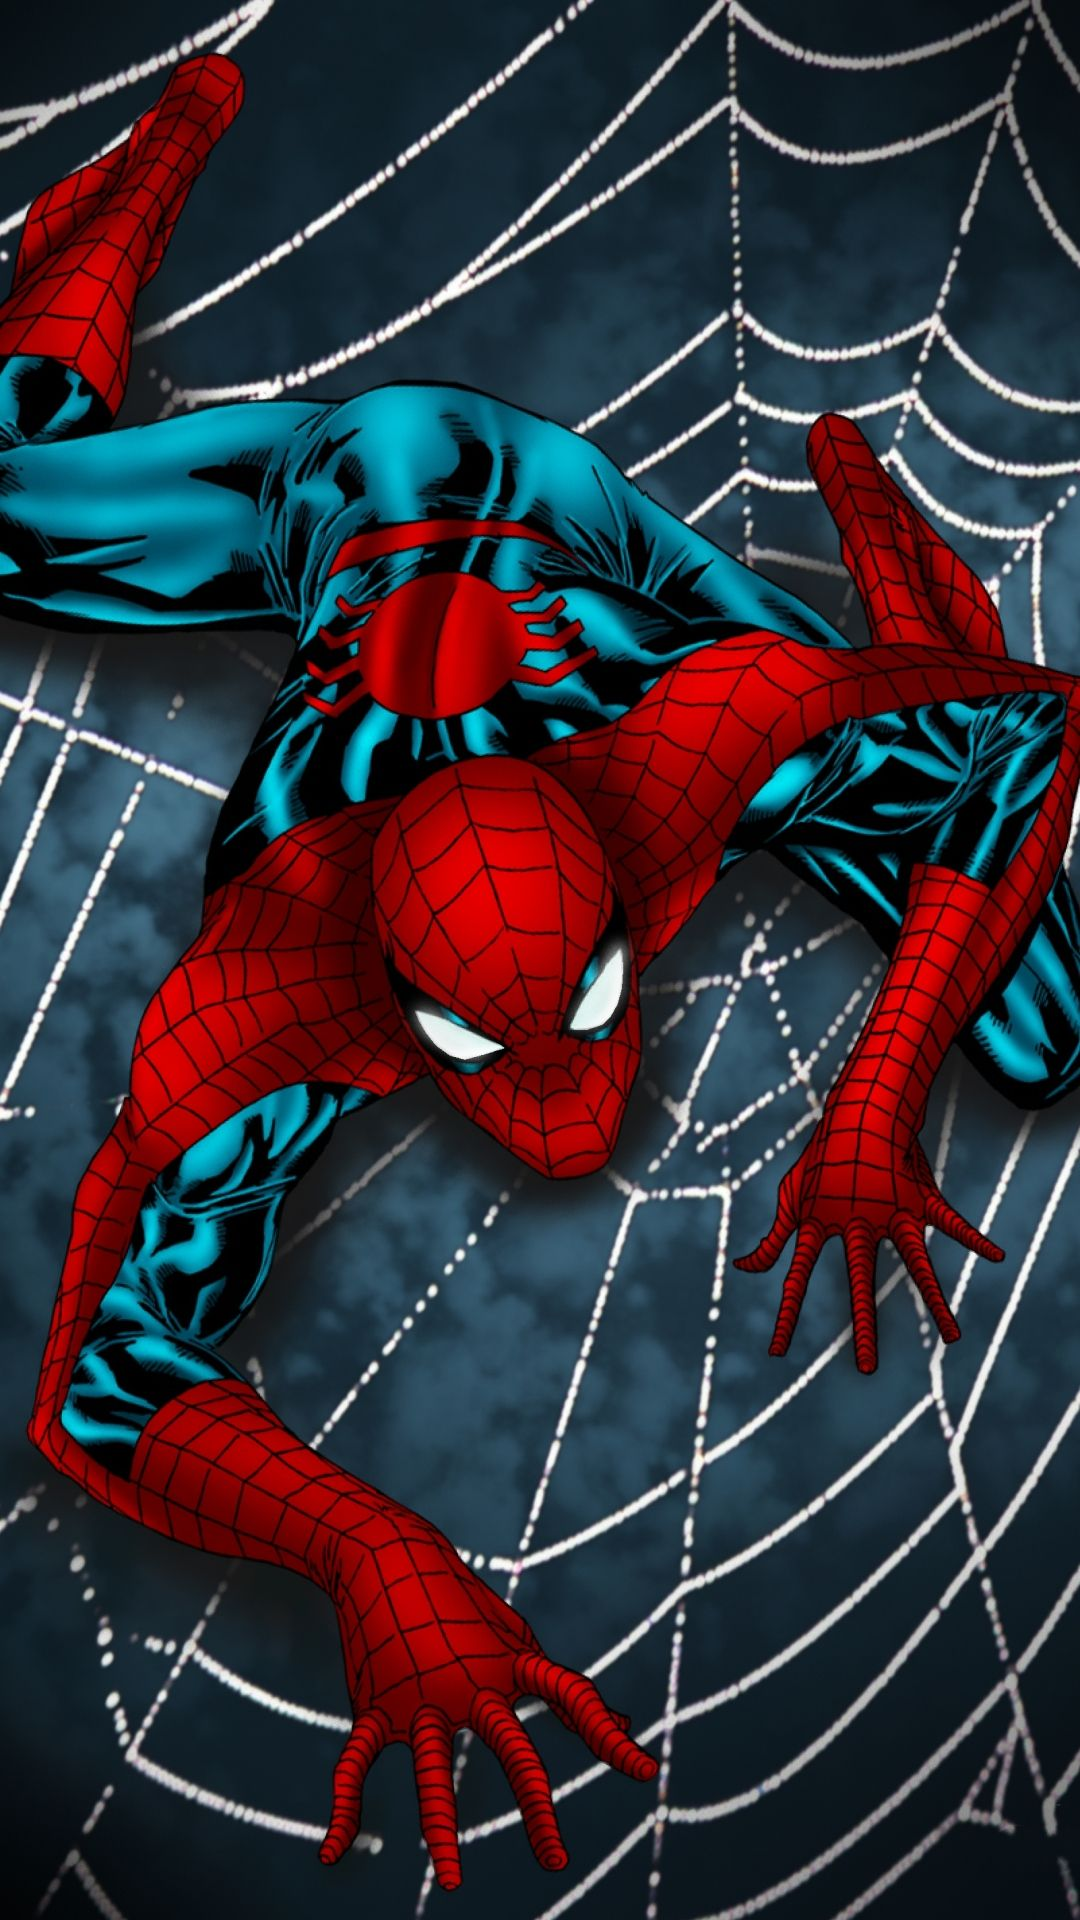 Spider Man Live Wallpaper Download Spider Man Live Wallpaper . | HD Wallpapers | Pinterest ...